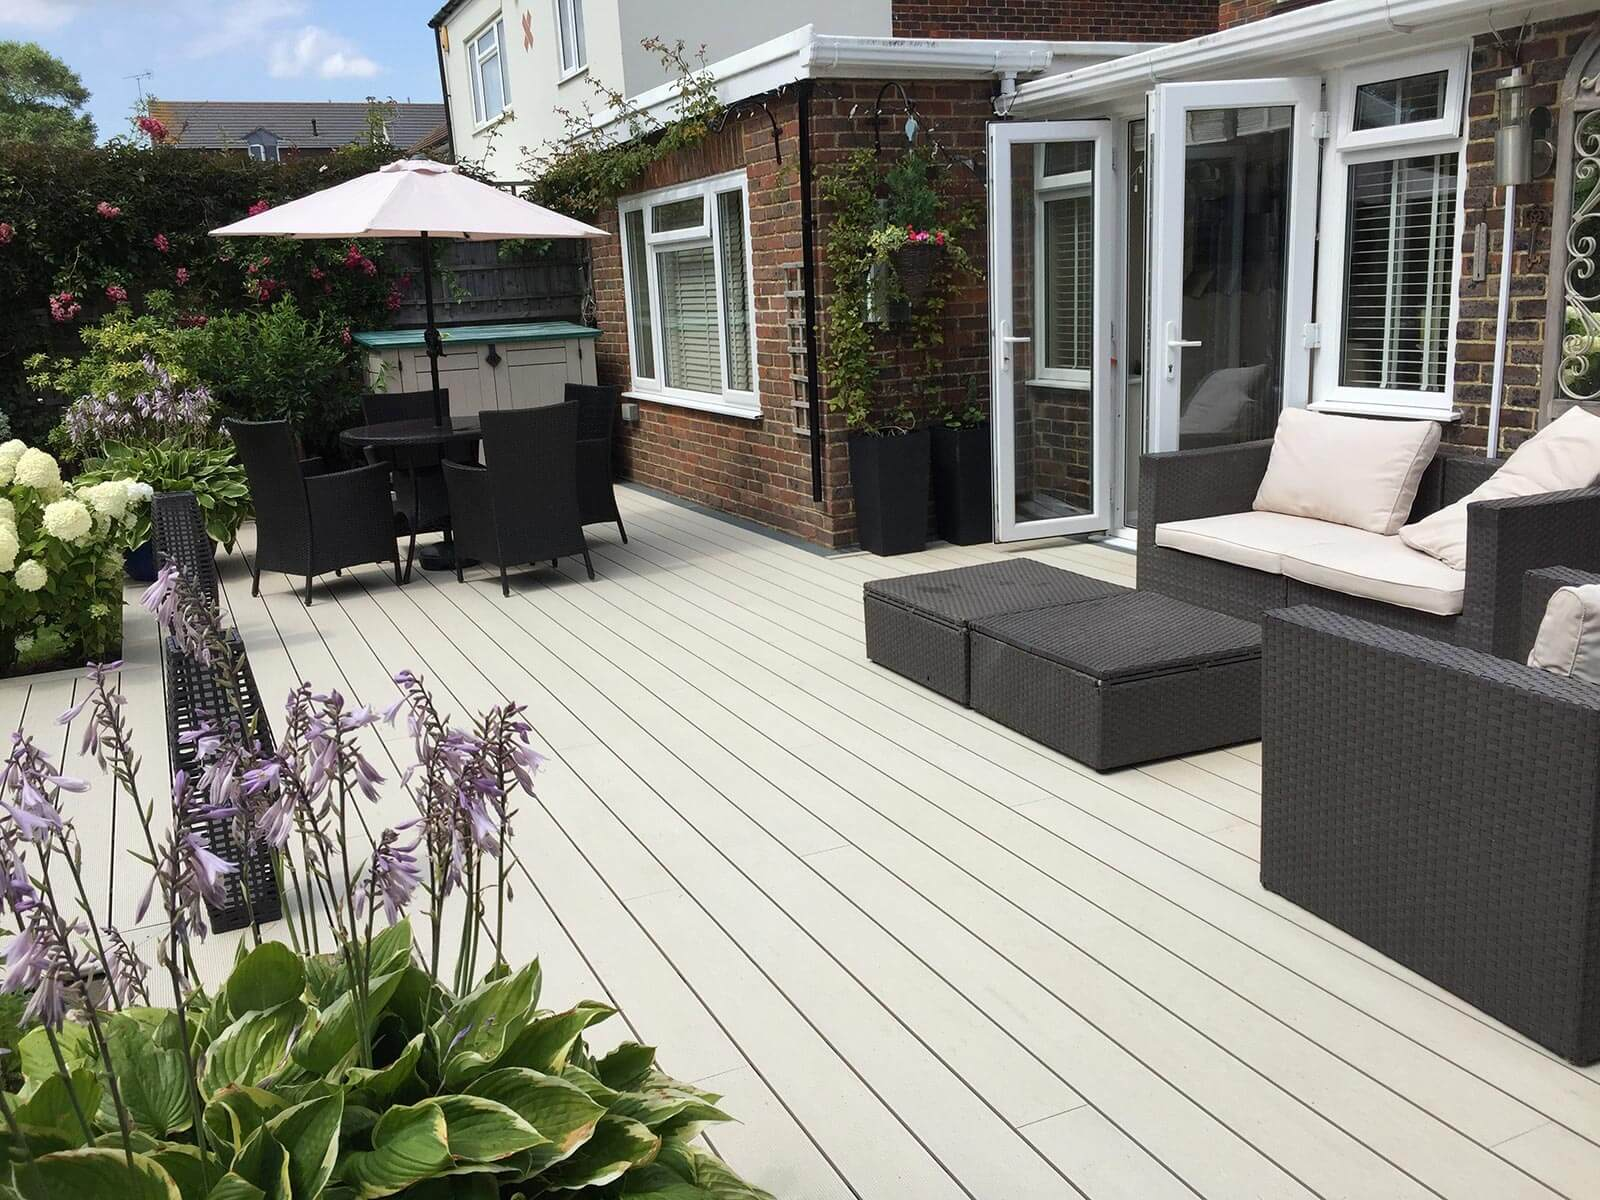 Cladco Composite Decking Boards in Ivory.